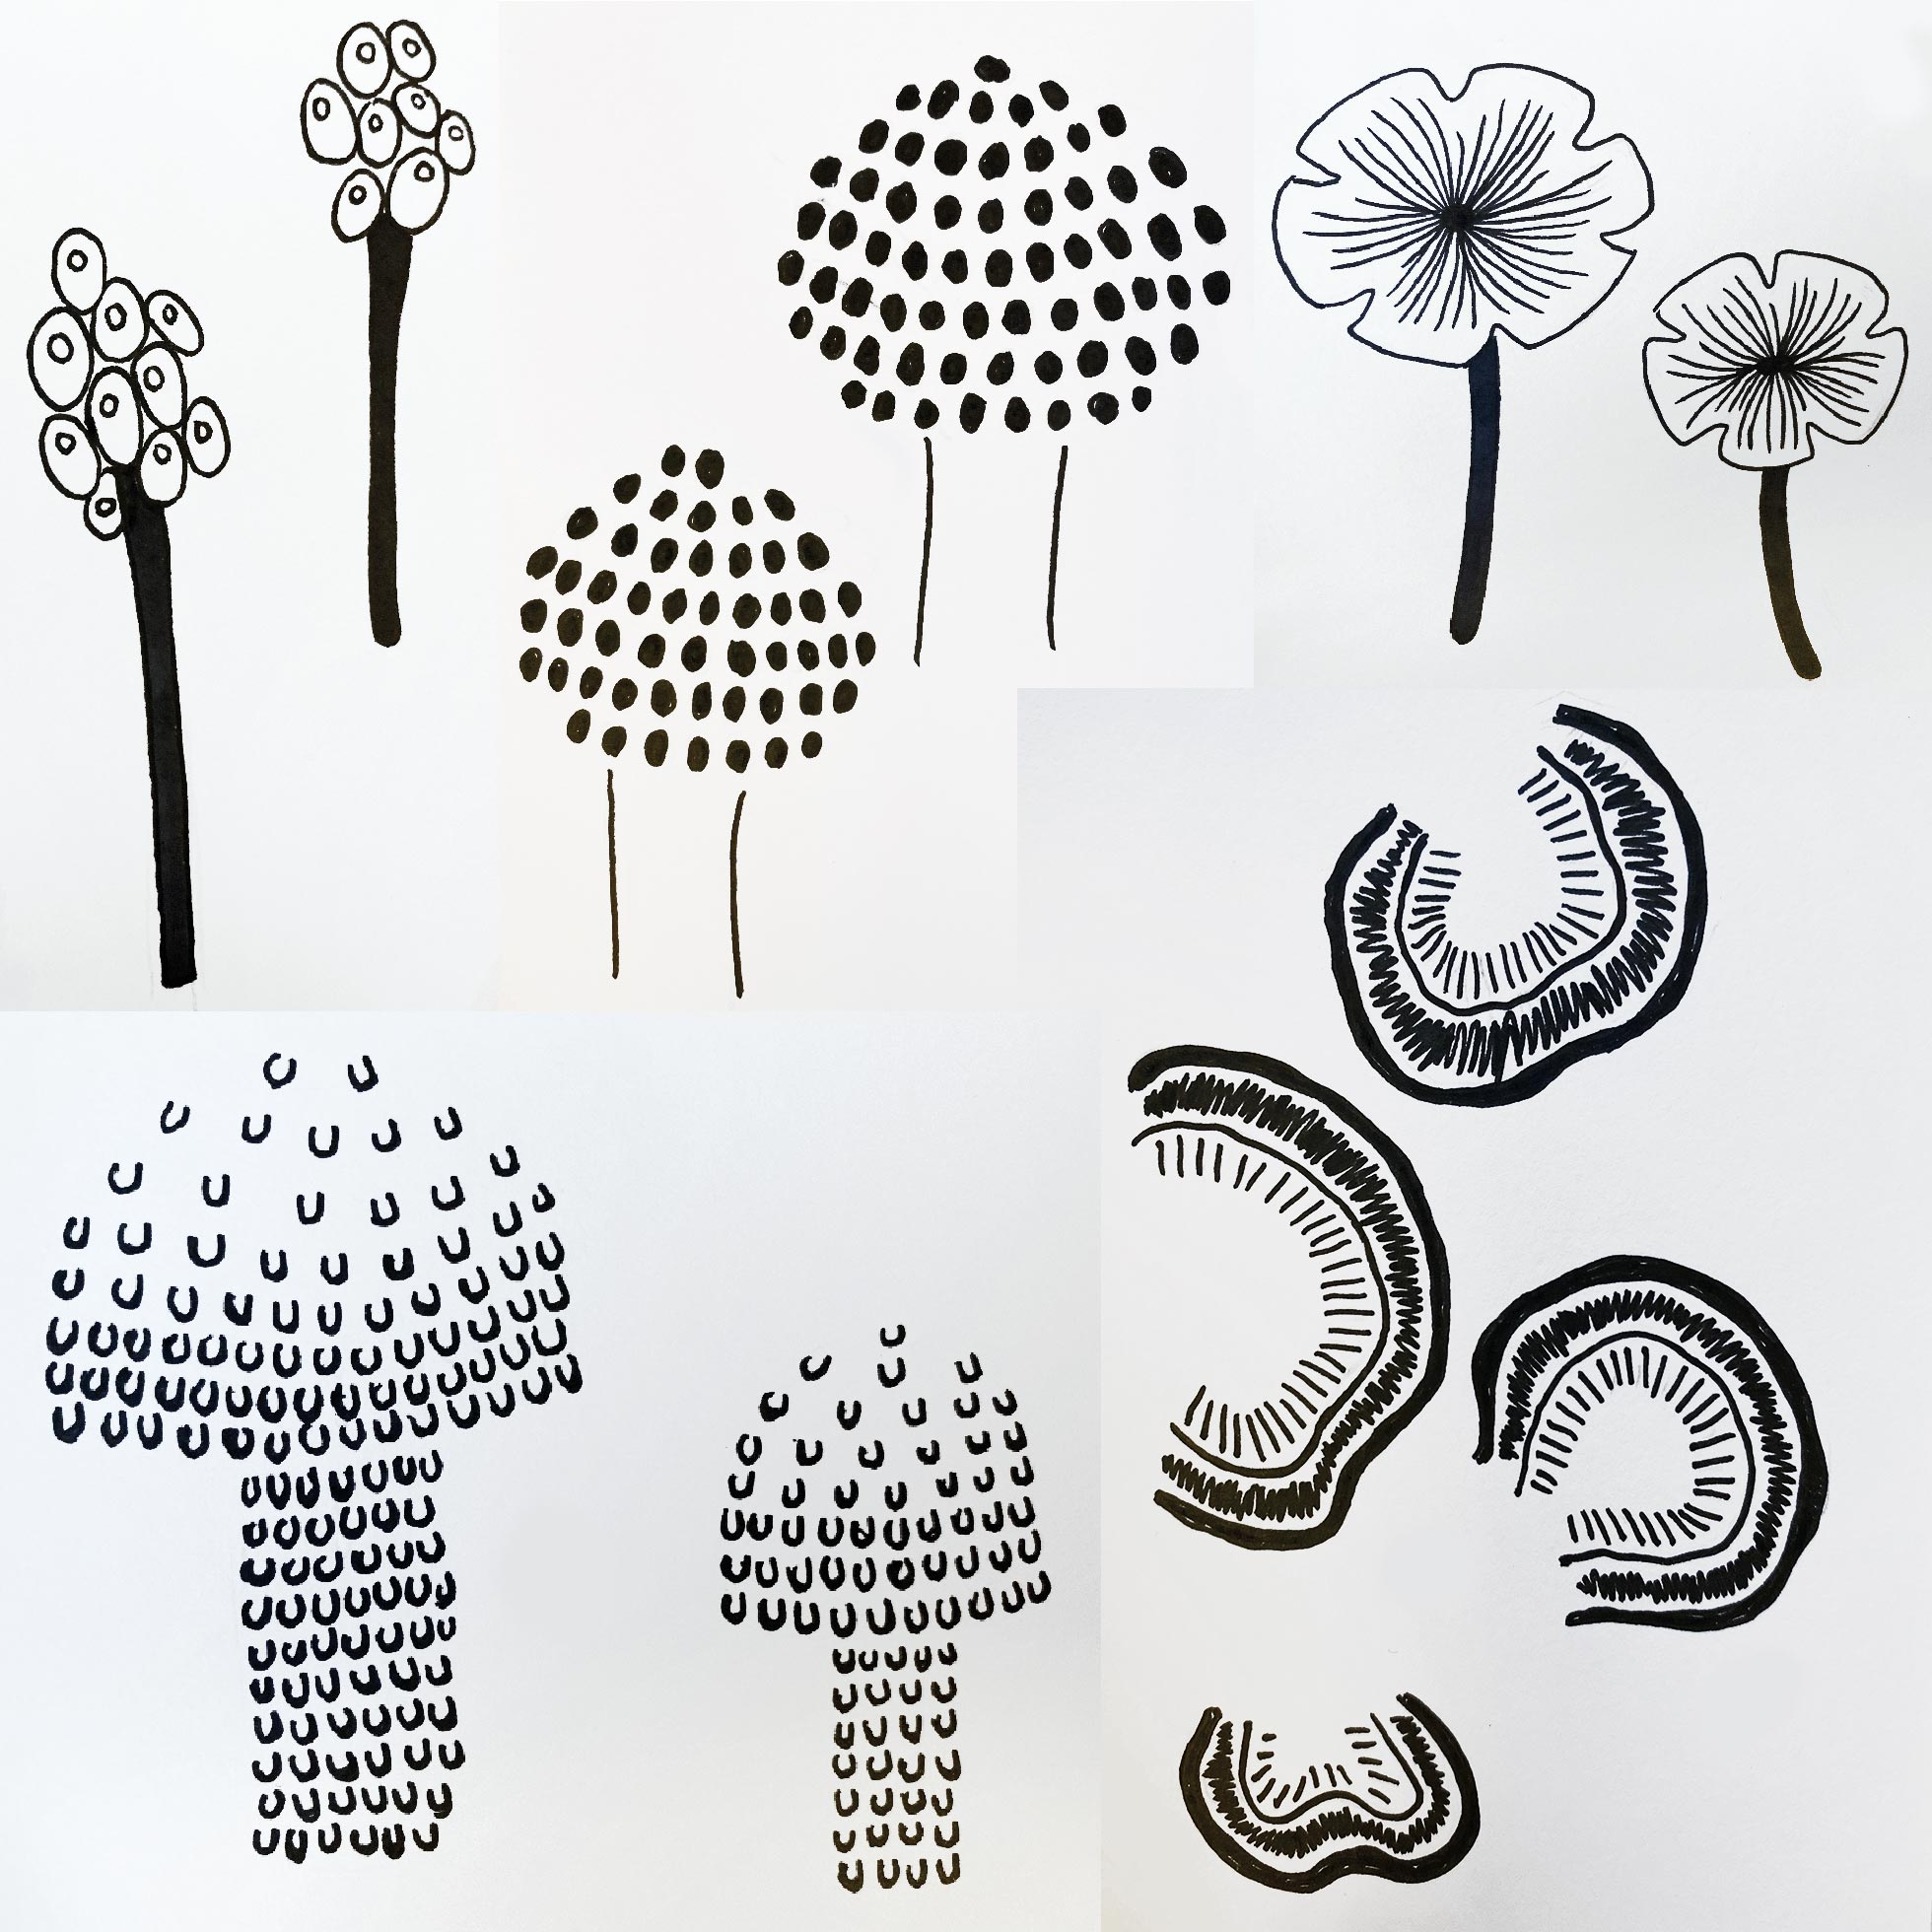 Sketches of Mushrooms - Pattern Designs in Progress